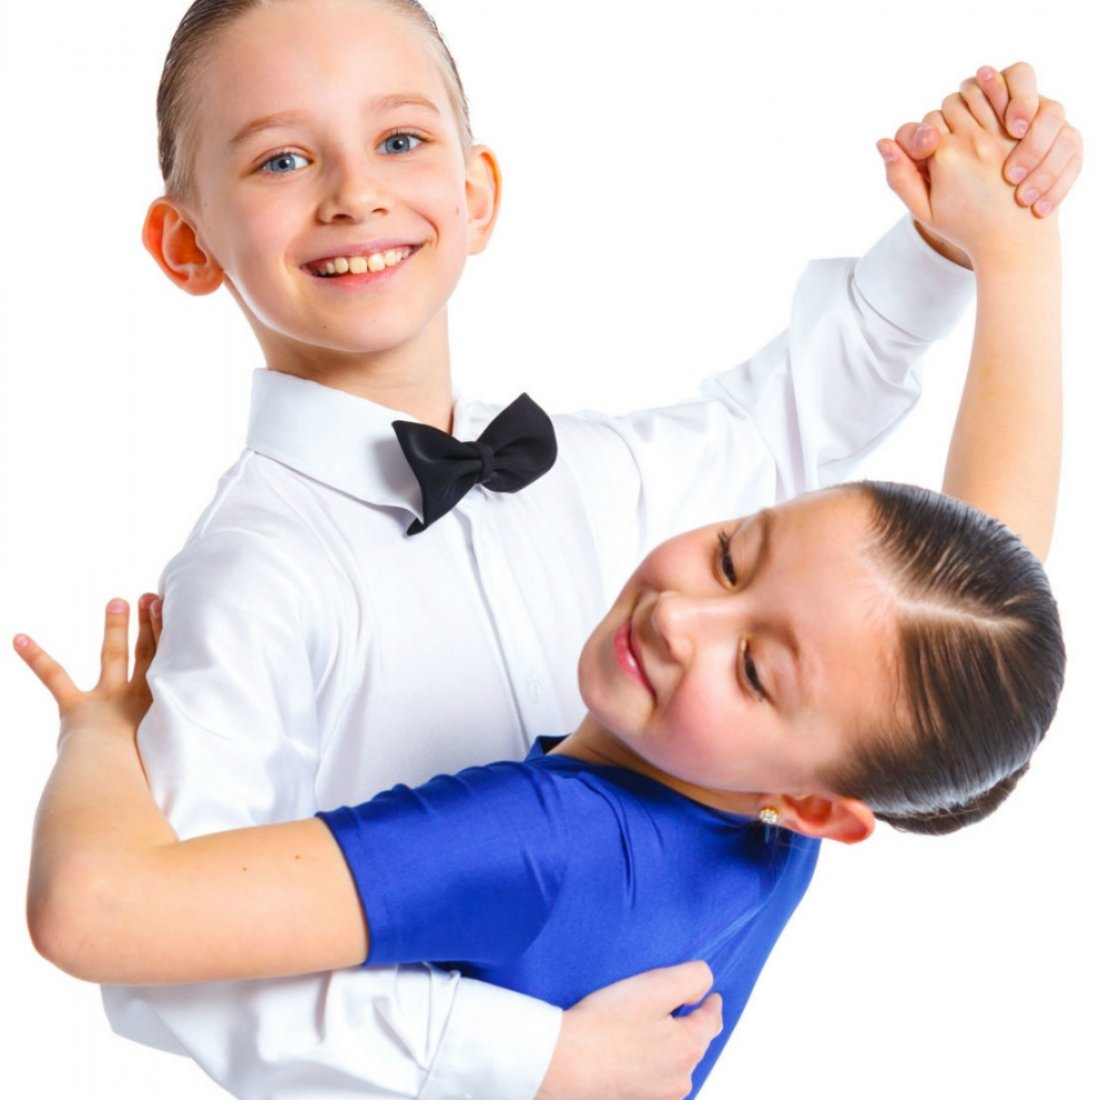 dancemasters_kids_12.jpg